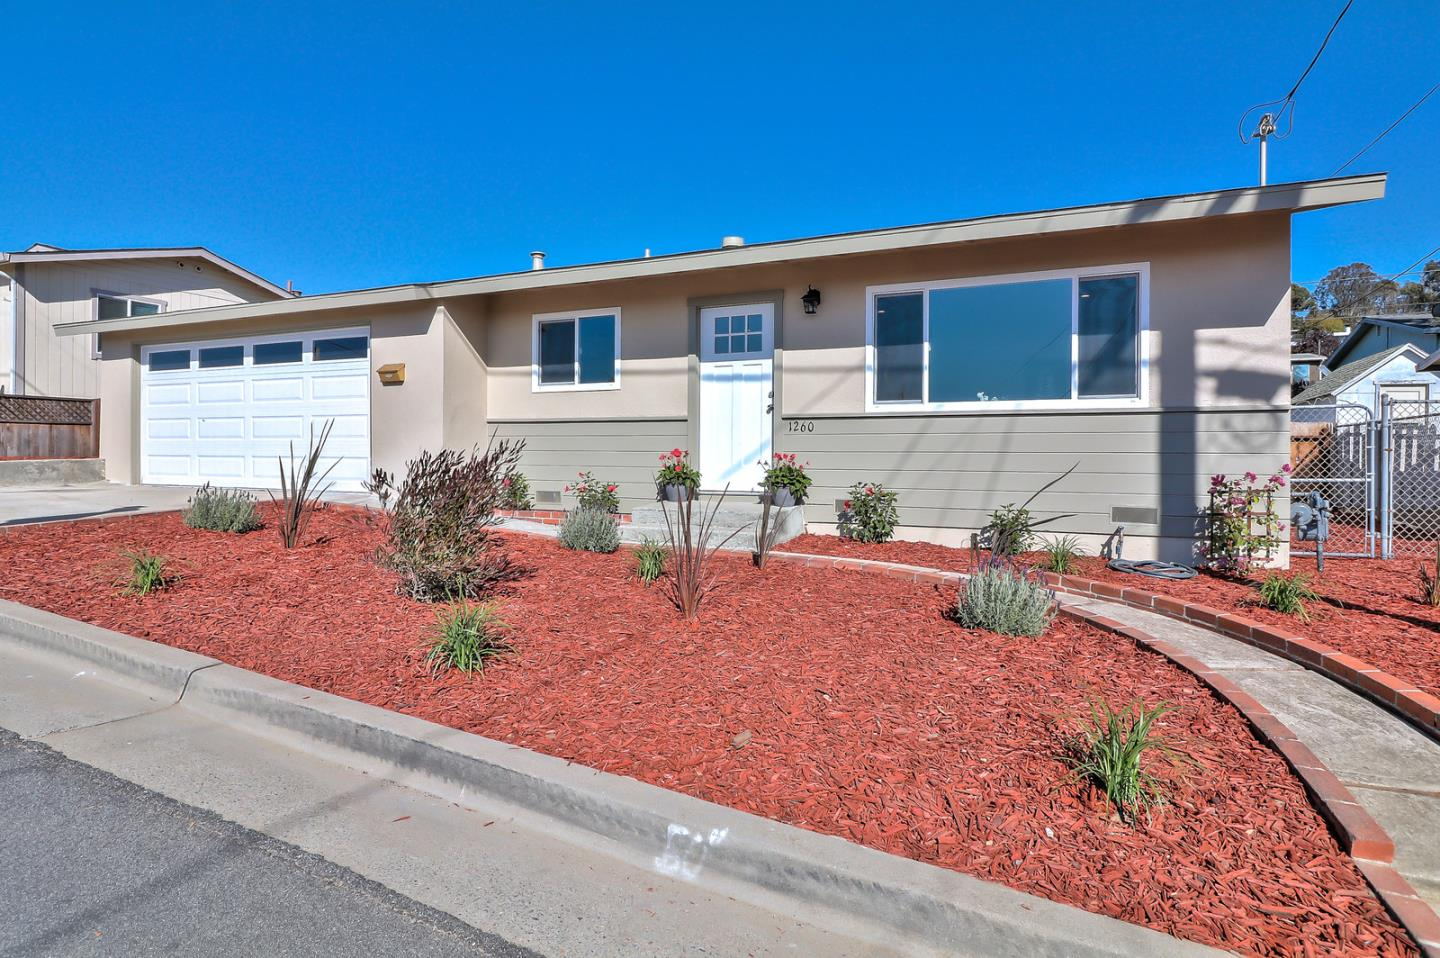 Detail Gallery Image 1 of 1 For 1260 Harding St, Seaside,  CA 93955 - 3 Beds | 2 Baths